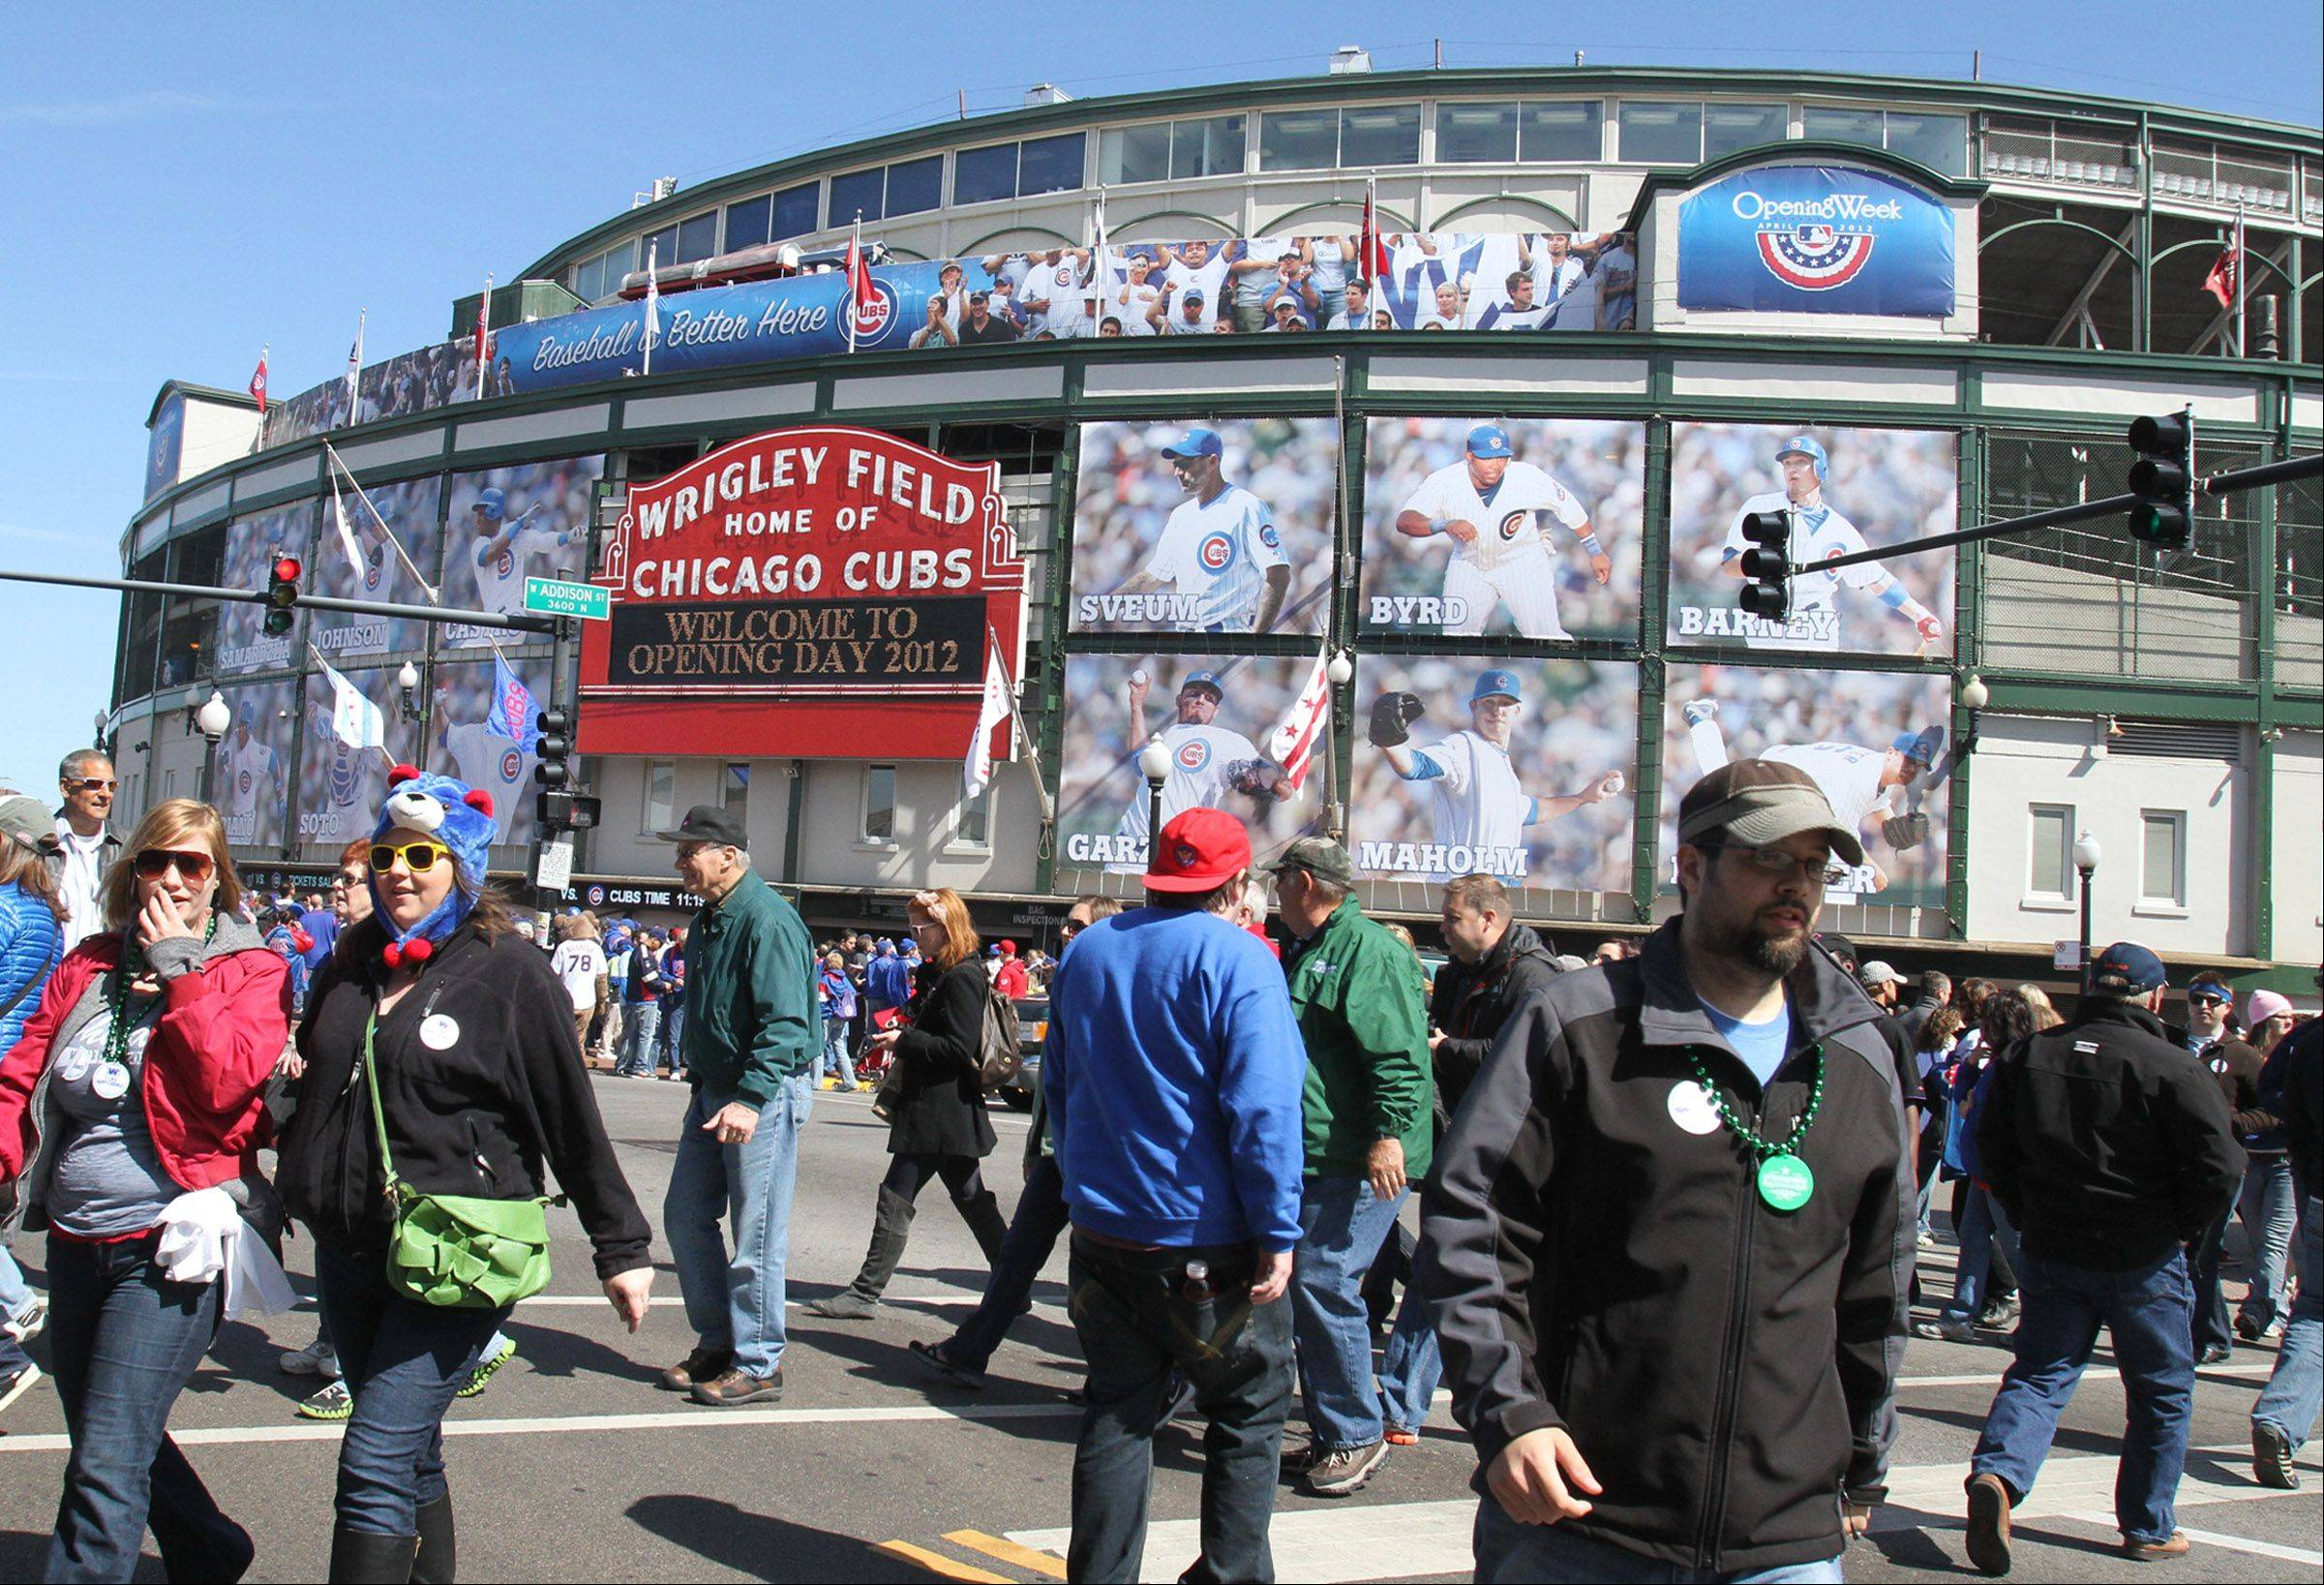 Opening Day fans had a variety of reactions to giant posters of players on the outside of their beloved Wrigley Field.